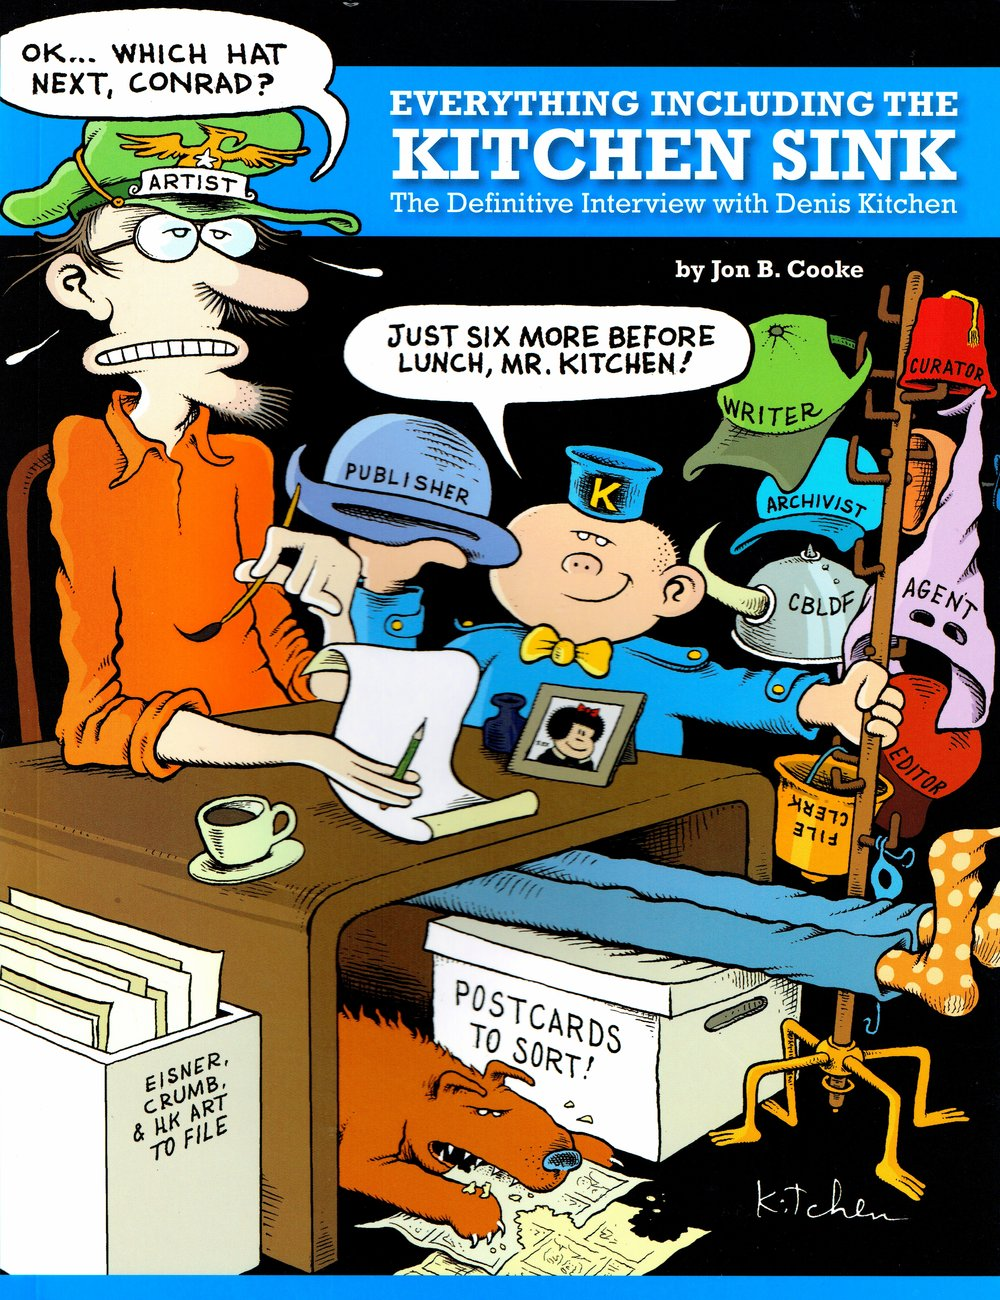 everything including the kitchen sink by jon b  cooke at dink 2017  cover an interview with denis kitchen of kitchen sink press  dink 2017      rh   nerdteam30 com